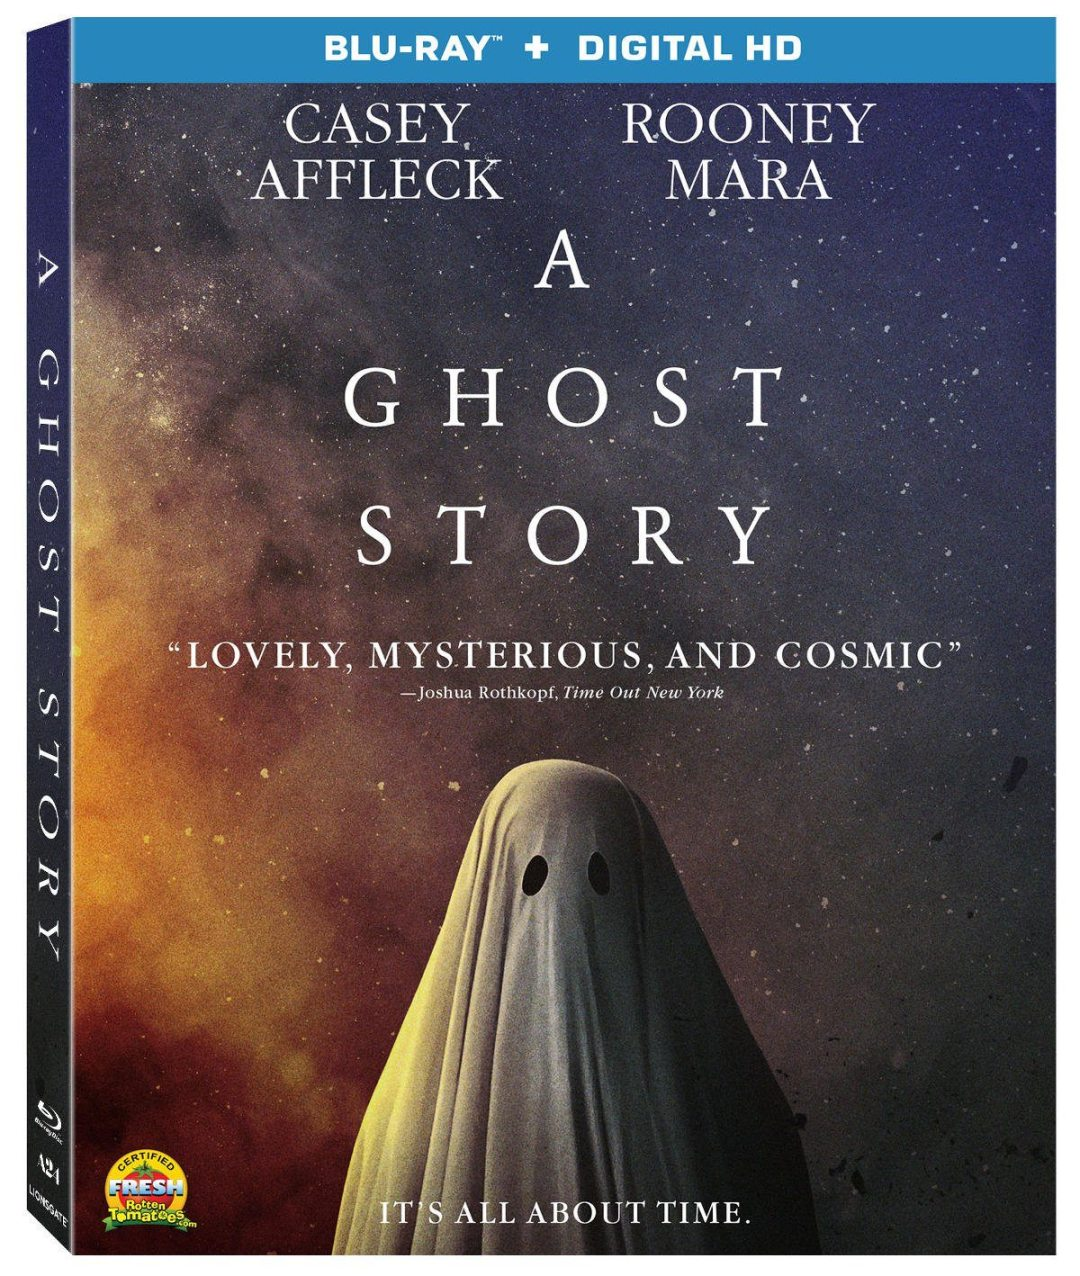 You Can Take Home 'A Ghost Story' This October